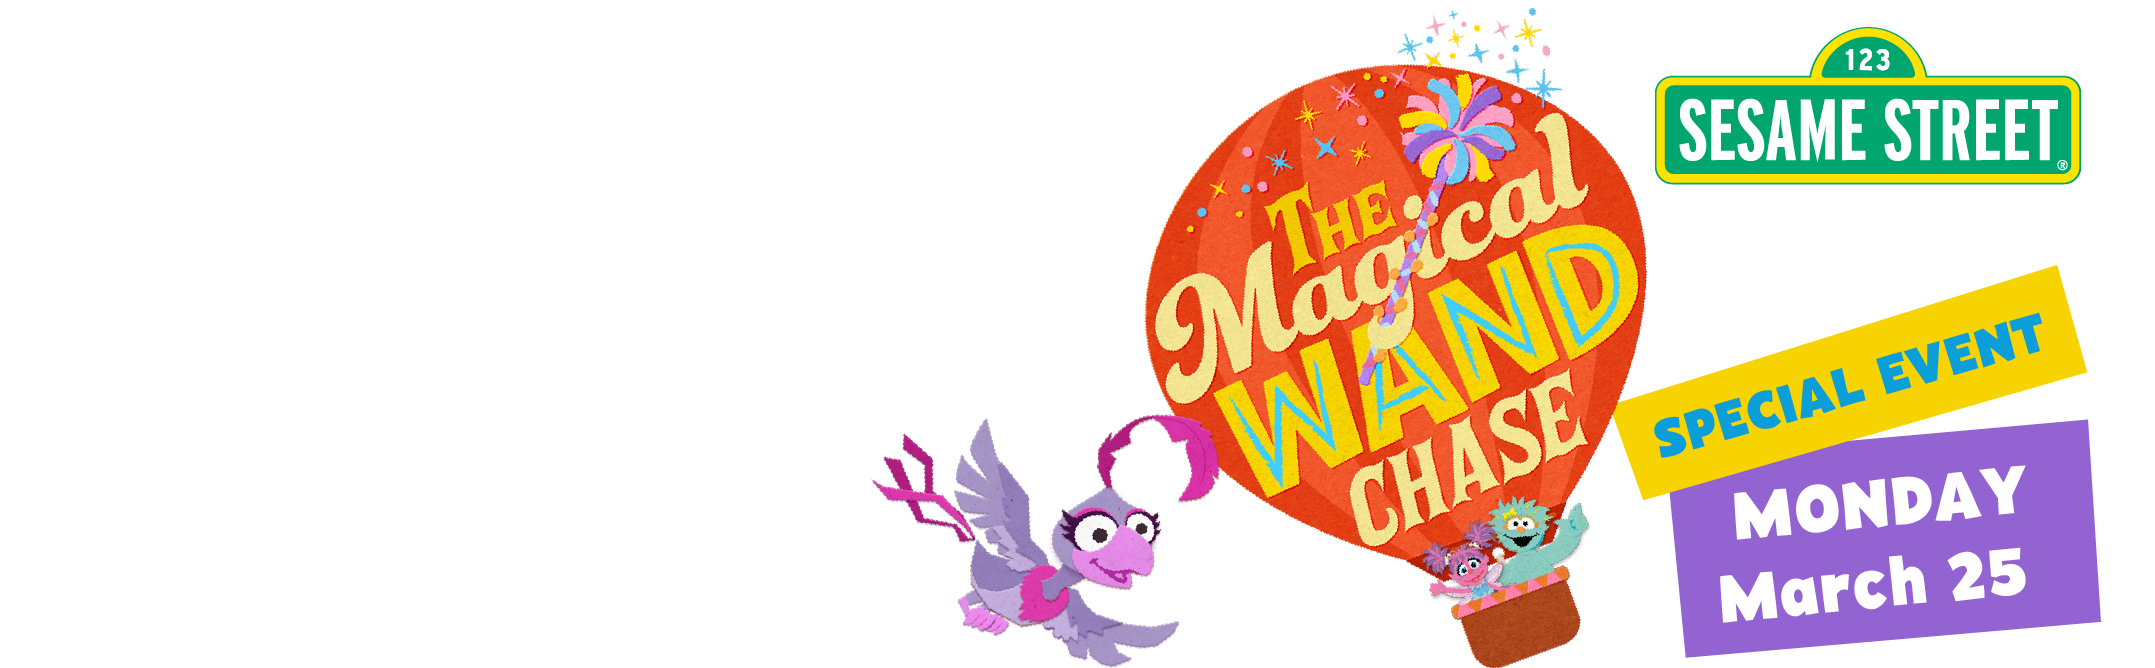 Sesame Street Magical Wand Chase Special Event. Monday March twenty-fifth.